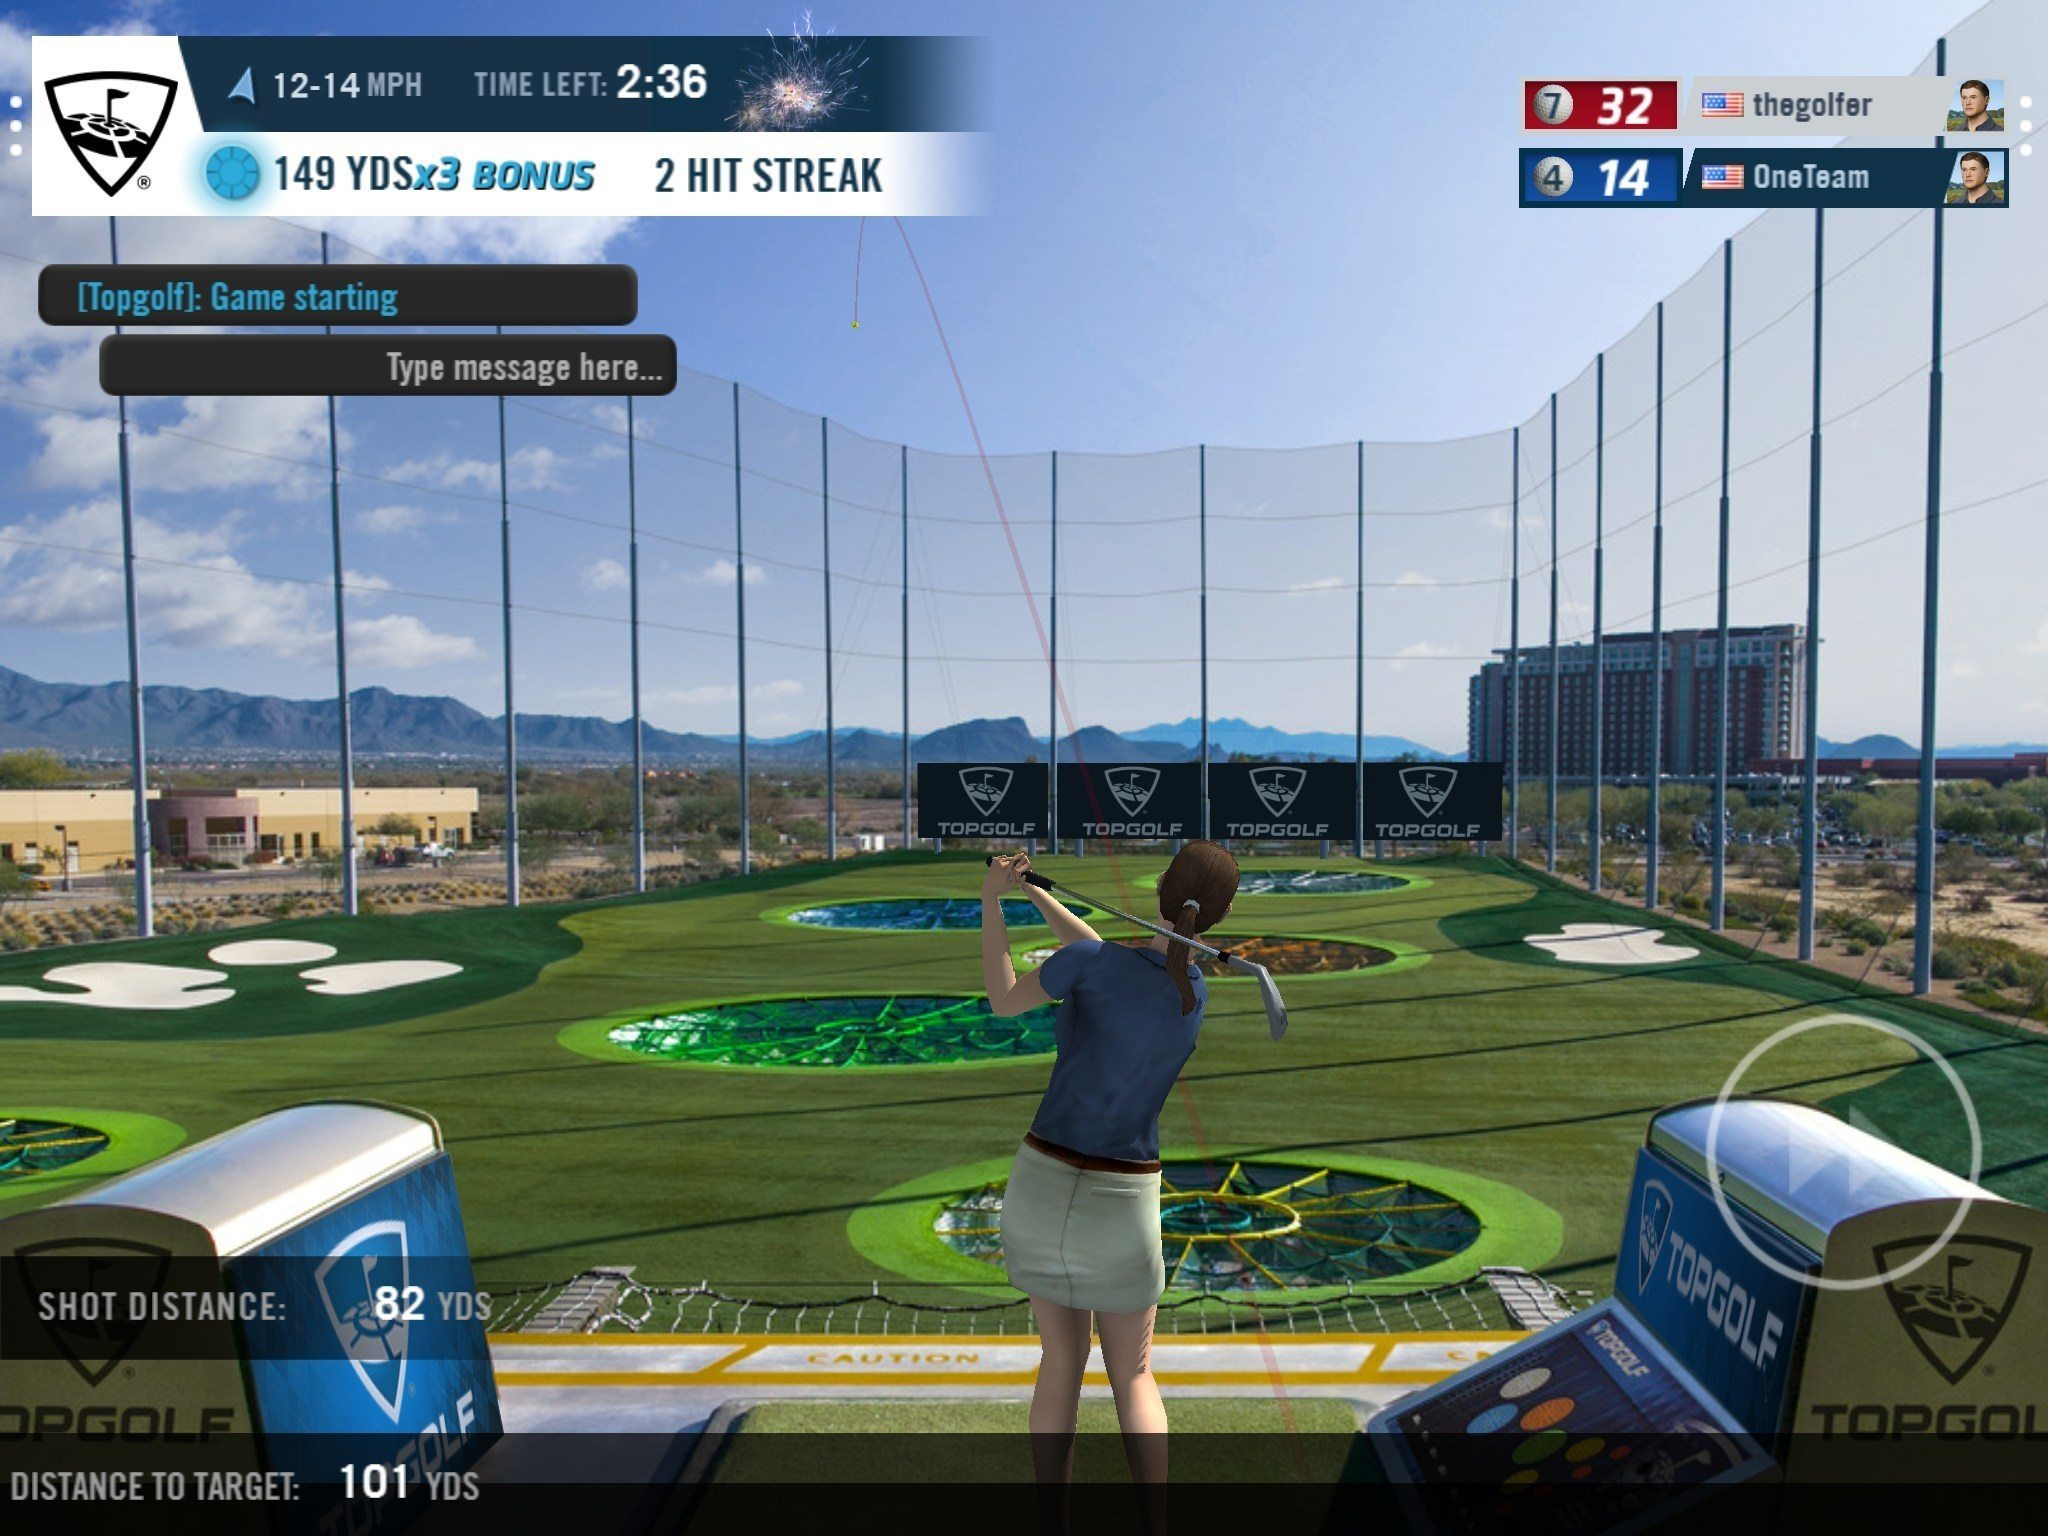 """<strong><span class=""""xn-location"""">DALLAS</span></strong>--Anyone in the world can now play <em><a href=""""http://www.topgolf.com/"""" target=""""_blank"""" rel=""""nofollow""""><b>Topgolf</b></a></em>on the go, whenever they want, in the <a href=""""https://www.wgt.com/"""" target=""""_blank"""" rel=""""nofollow"""">WGT Golf</a> mobile app. <em><strong>Topgolf,</strong></em> a global leader in sports entertainment, has integrated its social multi-player target-oriented game format with stunning views of its Scottsdale venue to offer a realistic Topgolf experience for players online.  WGT Golf, acquired by <em><strong>Topgolf</strong></em> in January, is the world's most popular digital golf gaming community, with more than 14 million players worldwide. Players can access the games through desktop, tablet, and iOS and Android apps. <blockquote>""""Offering the <em><strong>Topgolf</strong></em> experience in the WGT Golf app instantly provides millions of players a new avenue to experience and connect with Topgolf,"""" said Topgolf President of Media and WGT Co-Founder YuChiang Cheng. """"It was our goal to build a game that is casual to play yet hard to master and that brings people together to share in a fun experience and make new friends.""""</blockquote> In the <em><strong>Topgolf</strong></em> game on WGT Golf, players chat in real time and play against people from all over the world. Points are scored based on distance and relative position near the targets, with added opportunities for bonus points and challenges. Each game lasts approximately five minutes and allows for up to six players to compete simultaneously and see each other's shots fly through the air. Weekly leaderboards track player rankings, and more competition modes will be added on a regular basis.  Scottsdale is the first <em><strong>Topgolf</strong></em> venue recreated virtually using WGT's patented image and terrain-mapping technology. The WGT team laser-scanned the venue down to 3mm accuracy while capturing thousands of ultra-HD photogr"""